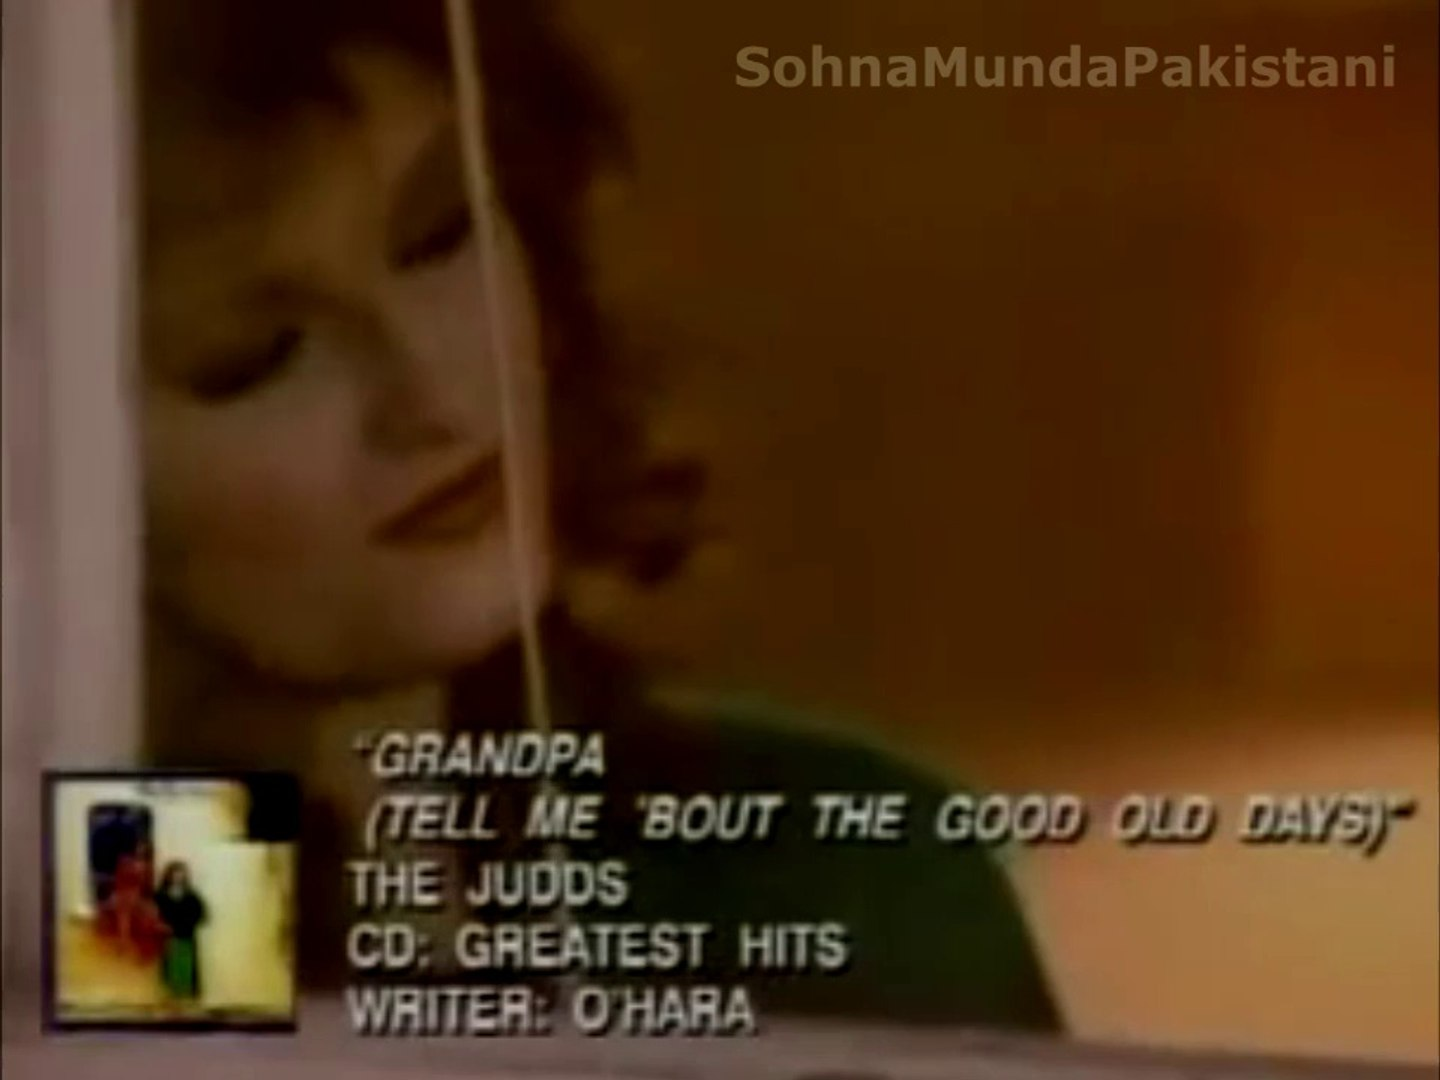 Judds - Grandpa (Tell me 'bout the good ole' days)